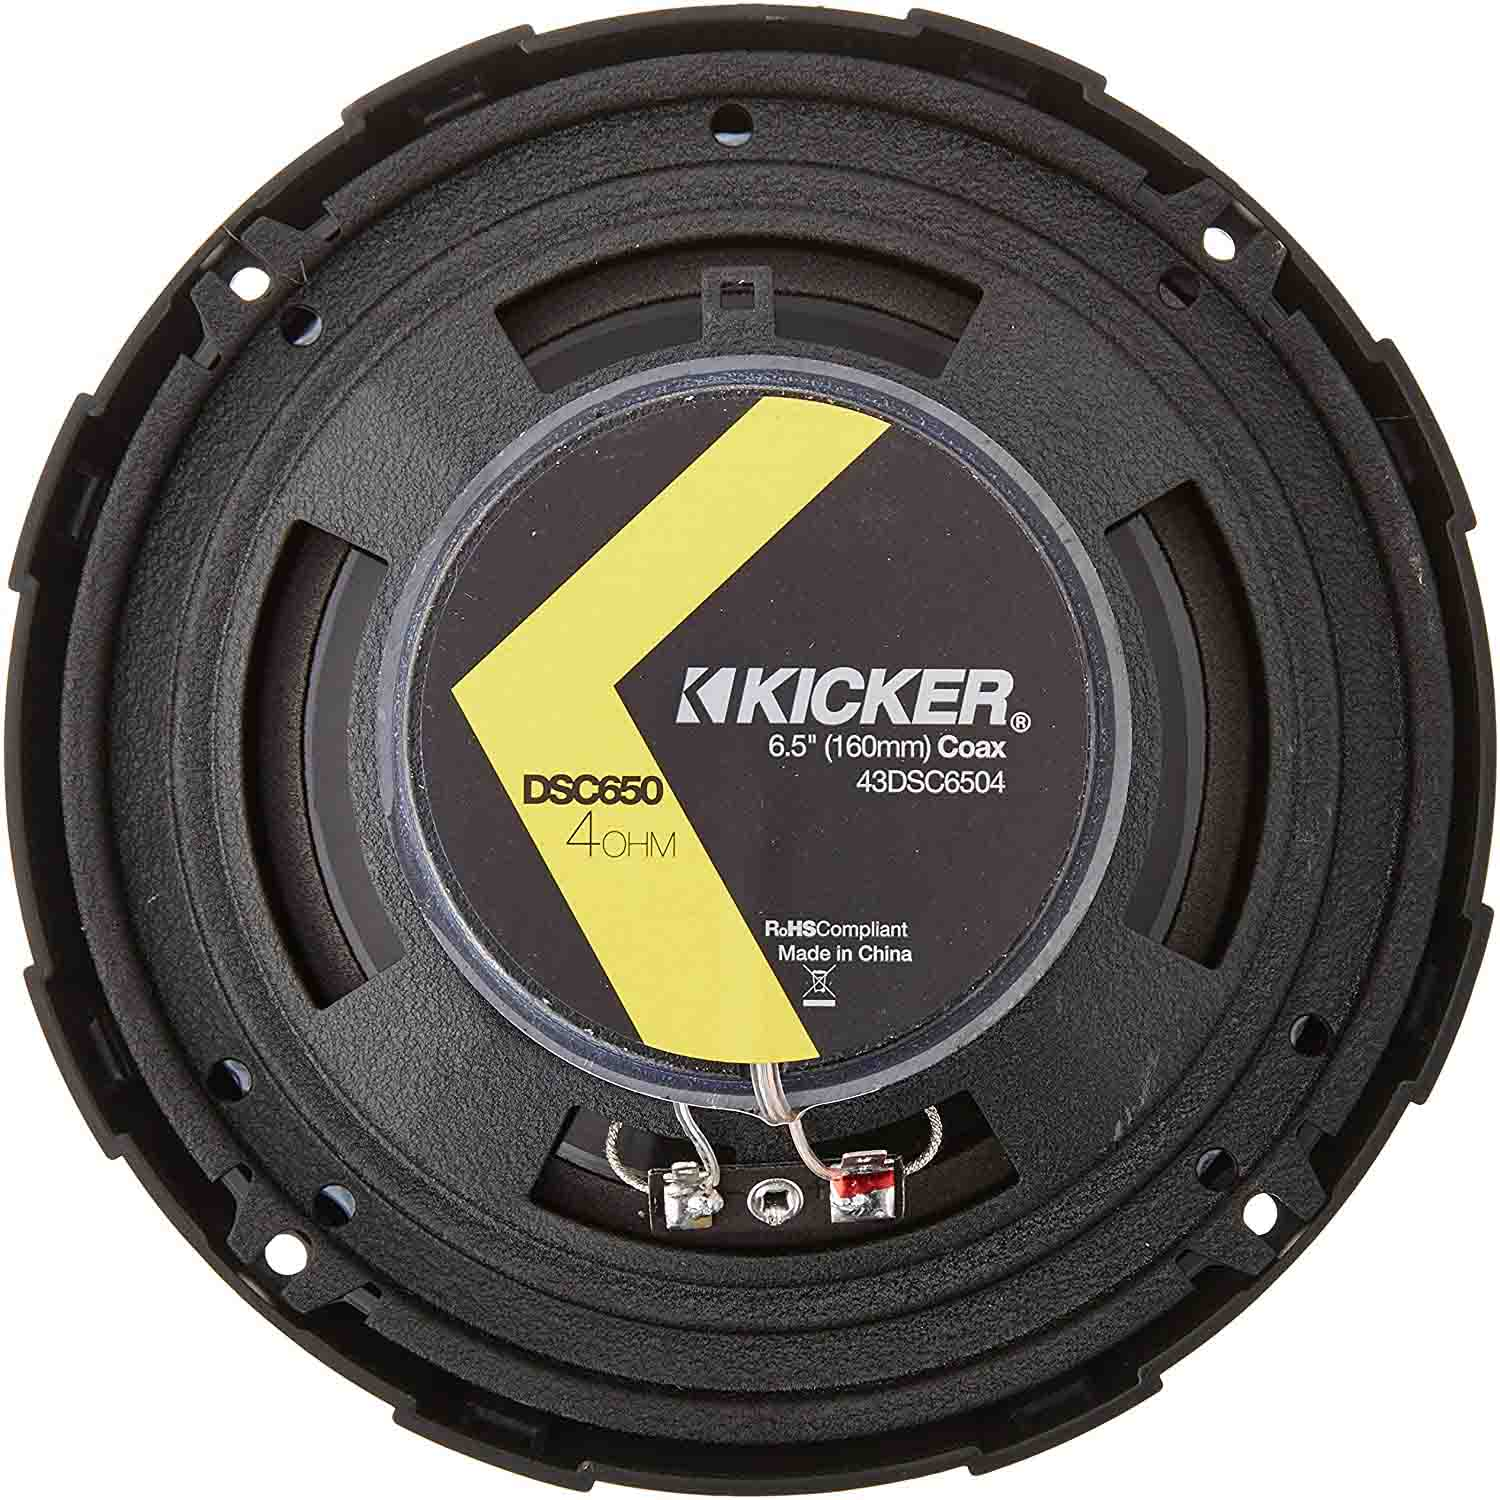 Kicker DSC650 DS Series